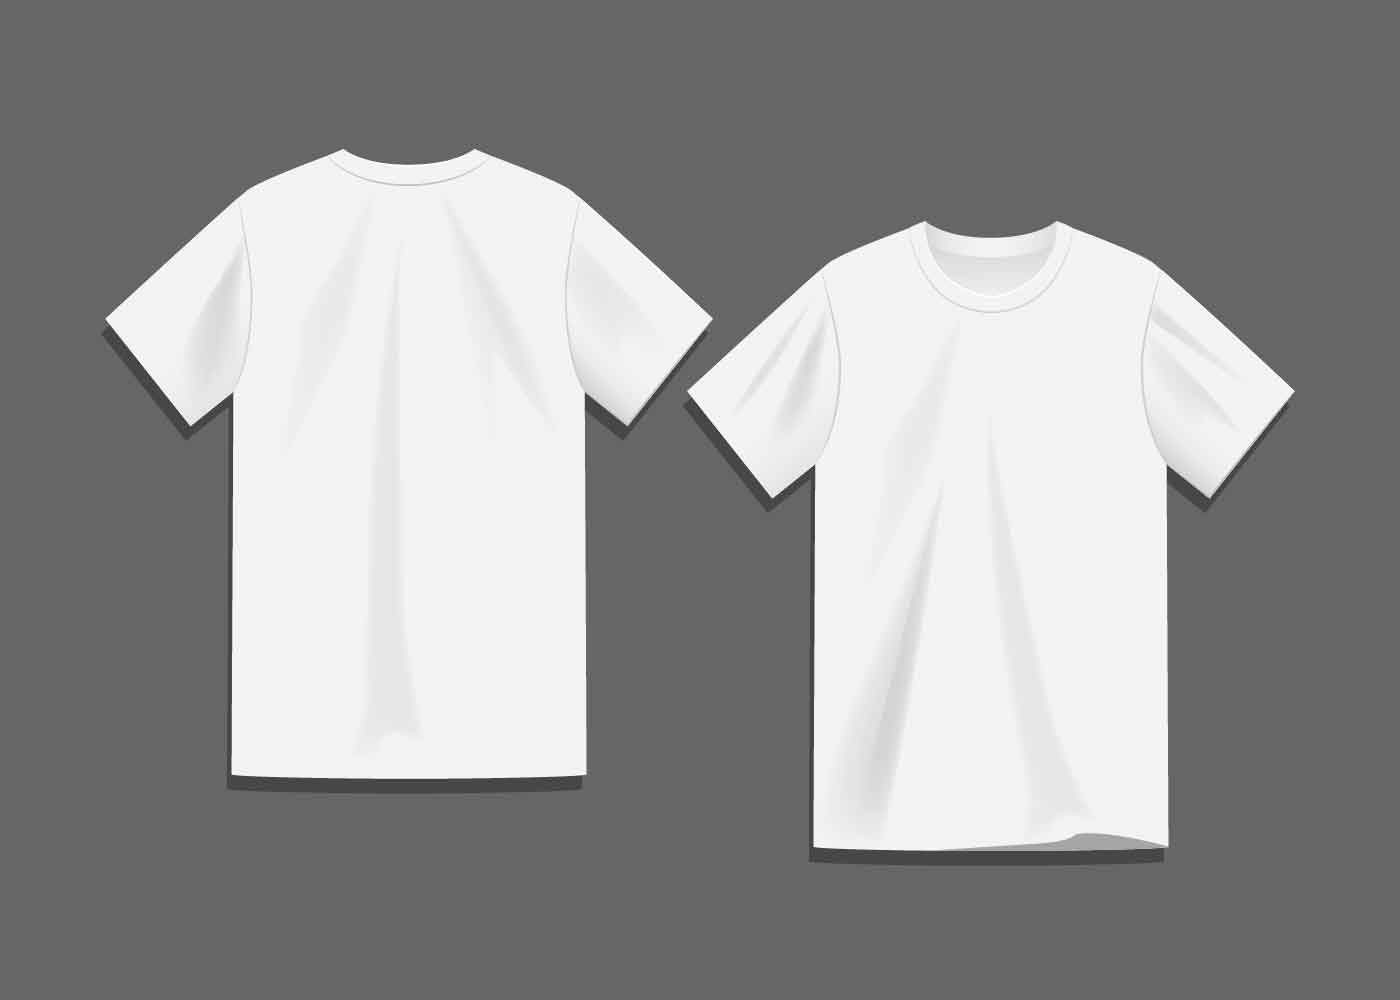 008 Sensational Plain T Shirt Template Idea  Blank Front And Back1400